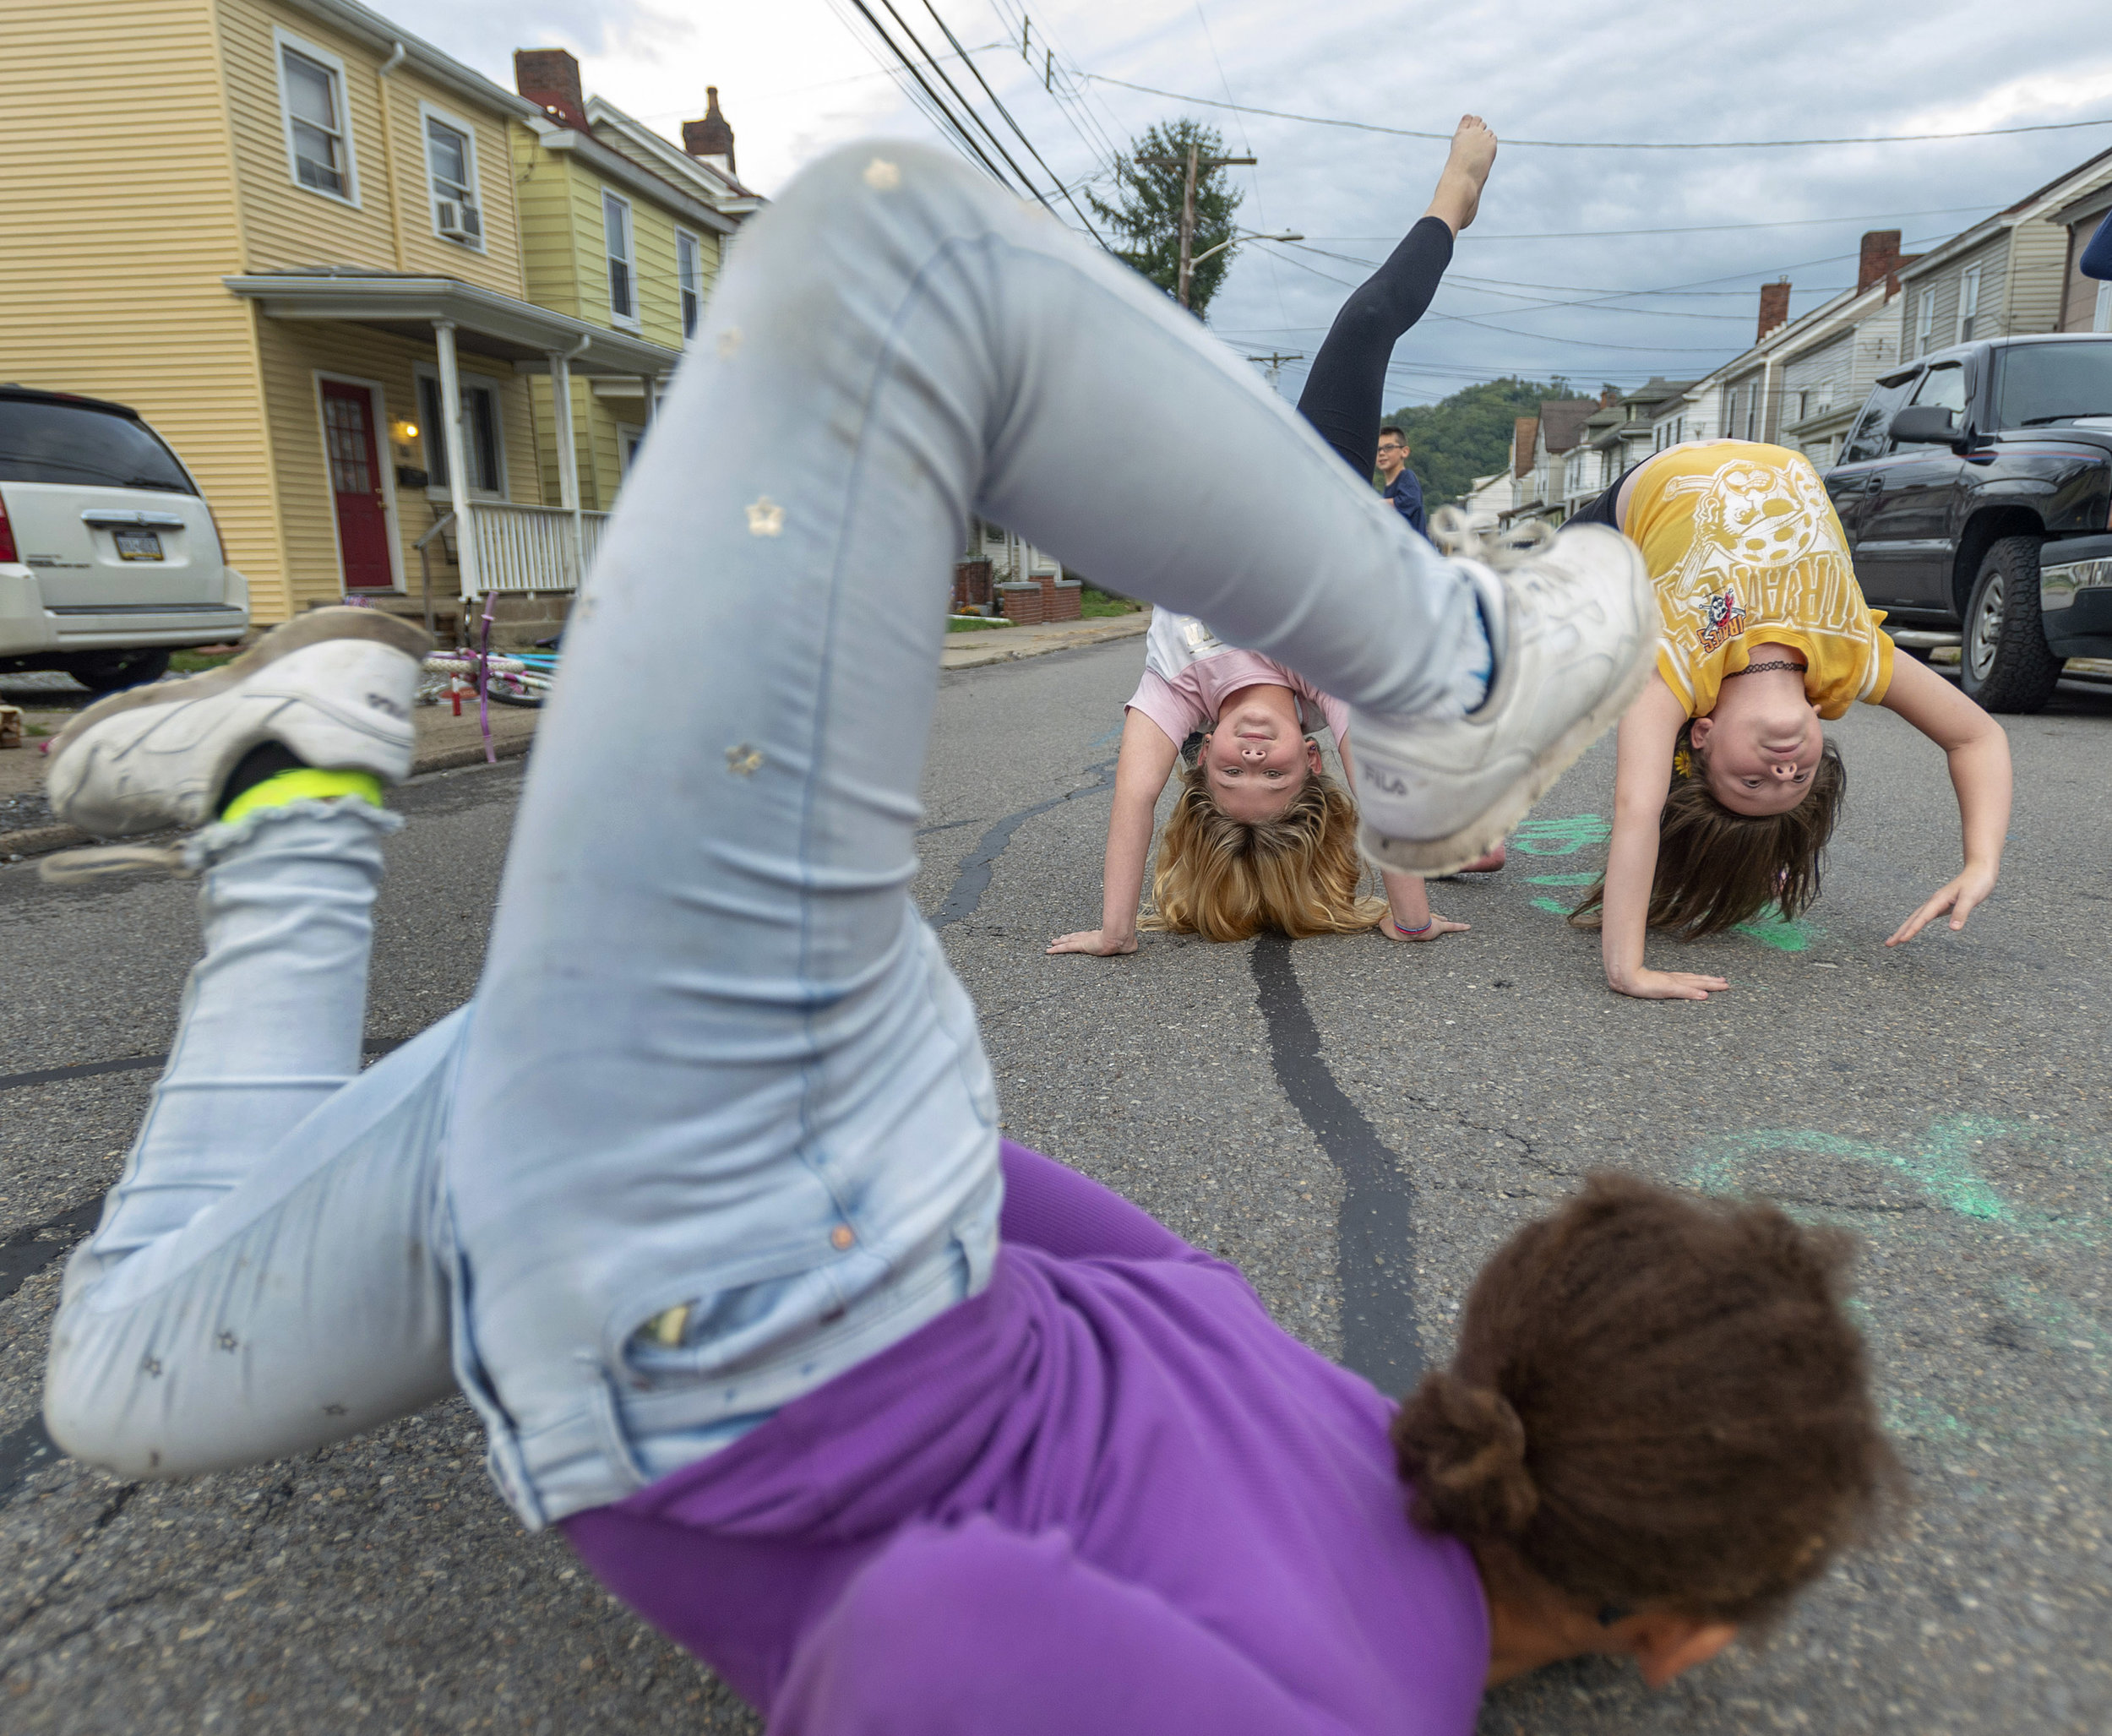 """Chianne Corniffe, Callie Rector and Graci Ricci, all 10, practice their gymnastics on Wednesday, Sept. 26, 2018, along Dewey Street, or as the girls refer to it as """"the party street,"""" in Etna. (Steph Chambers/Post-Gazette)"""